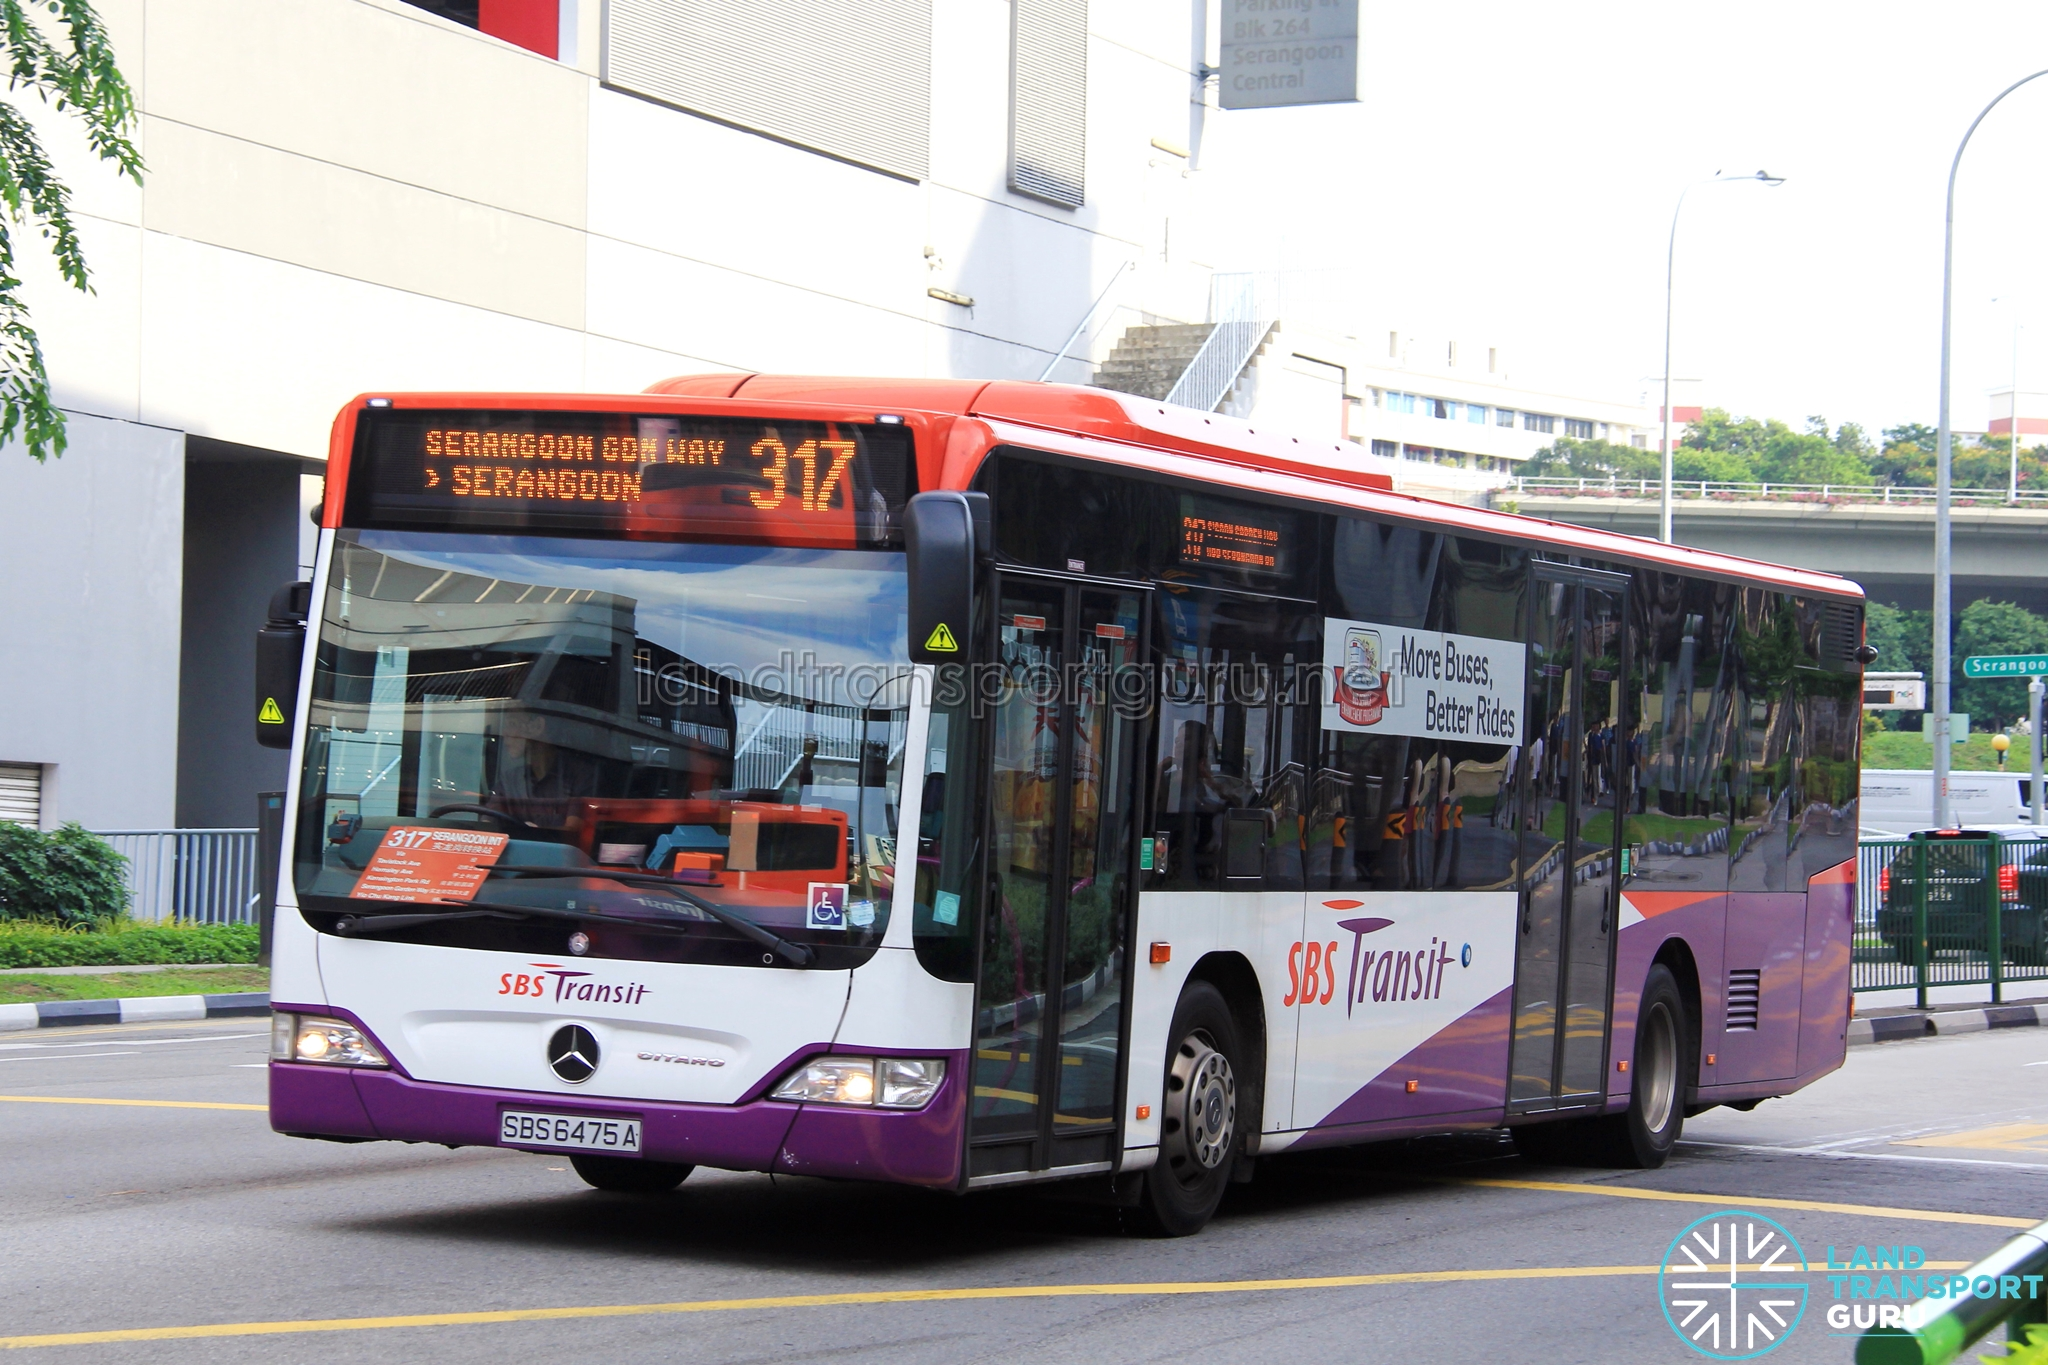 sbs transit feeder bus service 317 | land transport guru